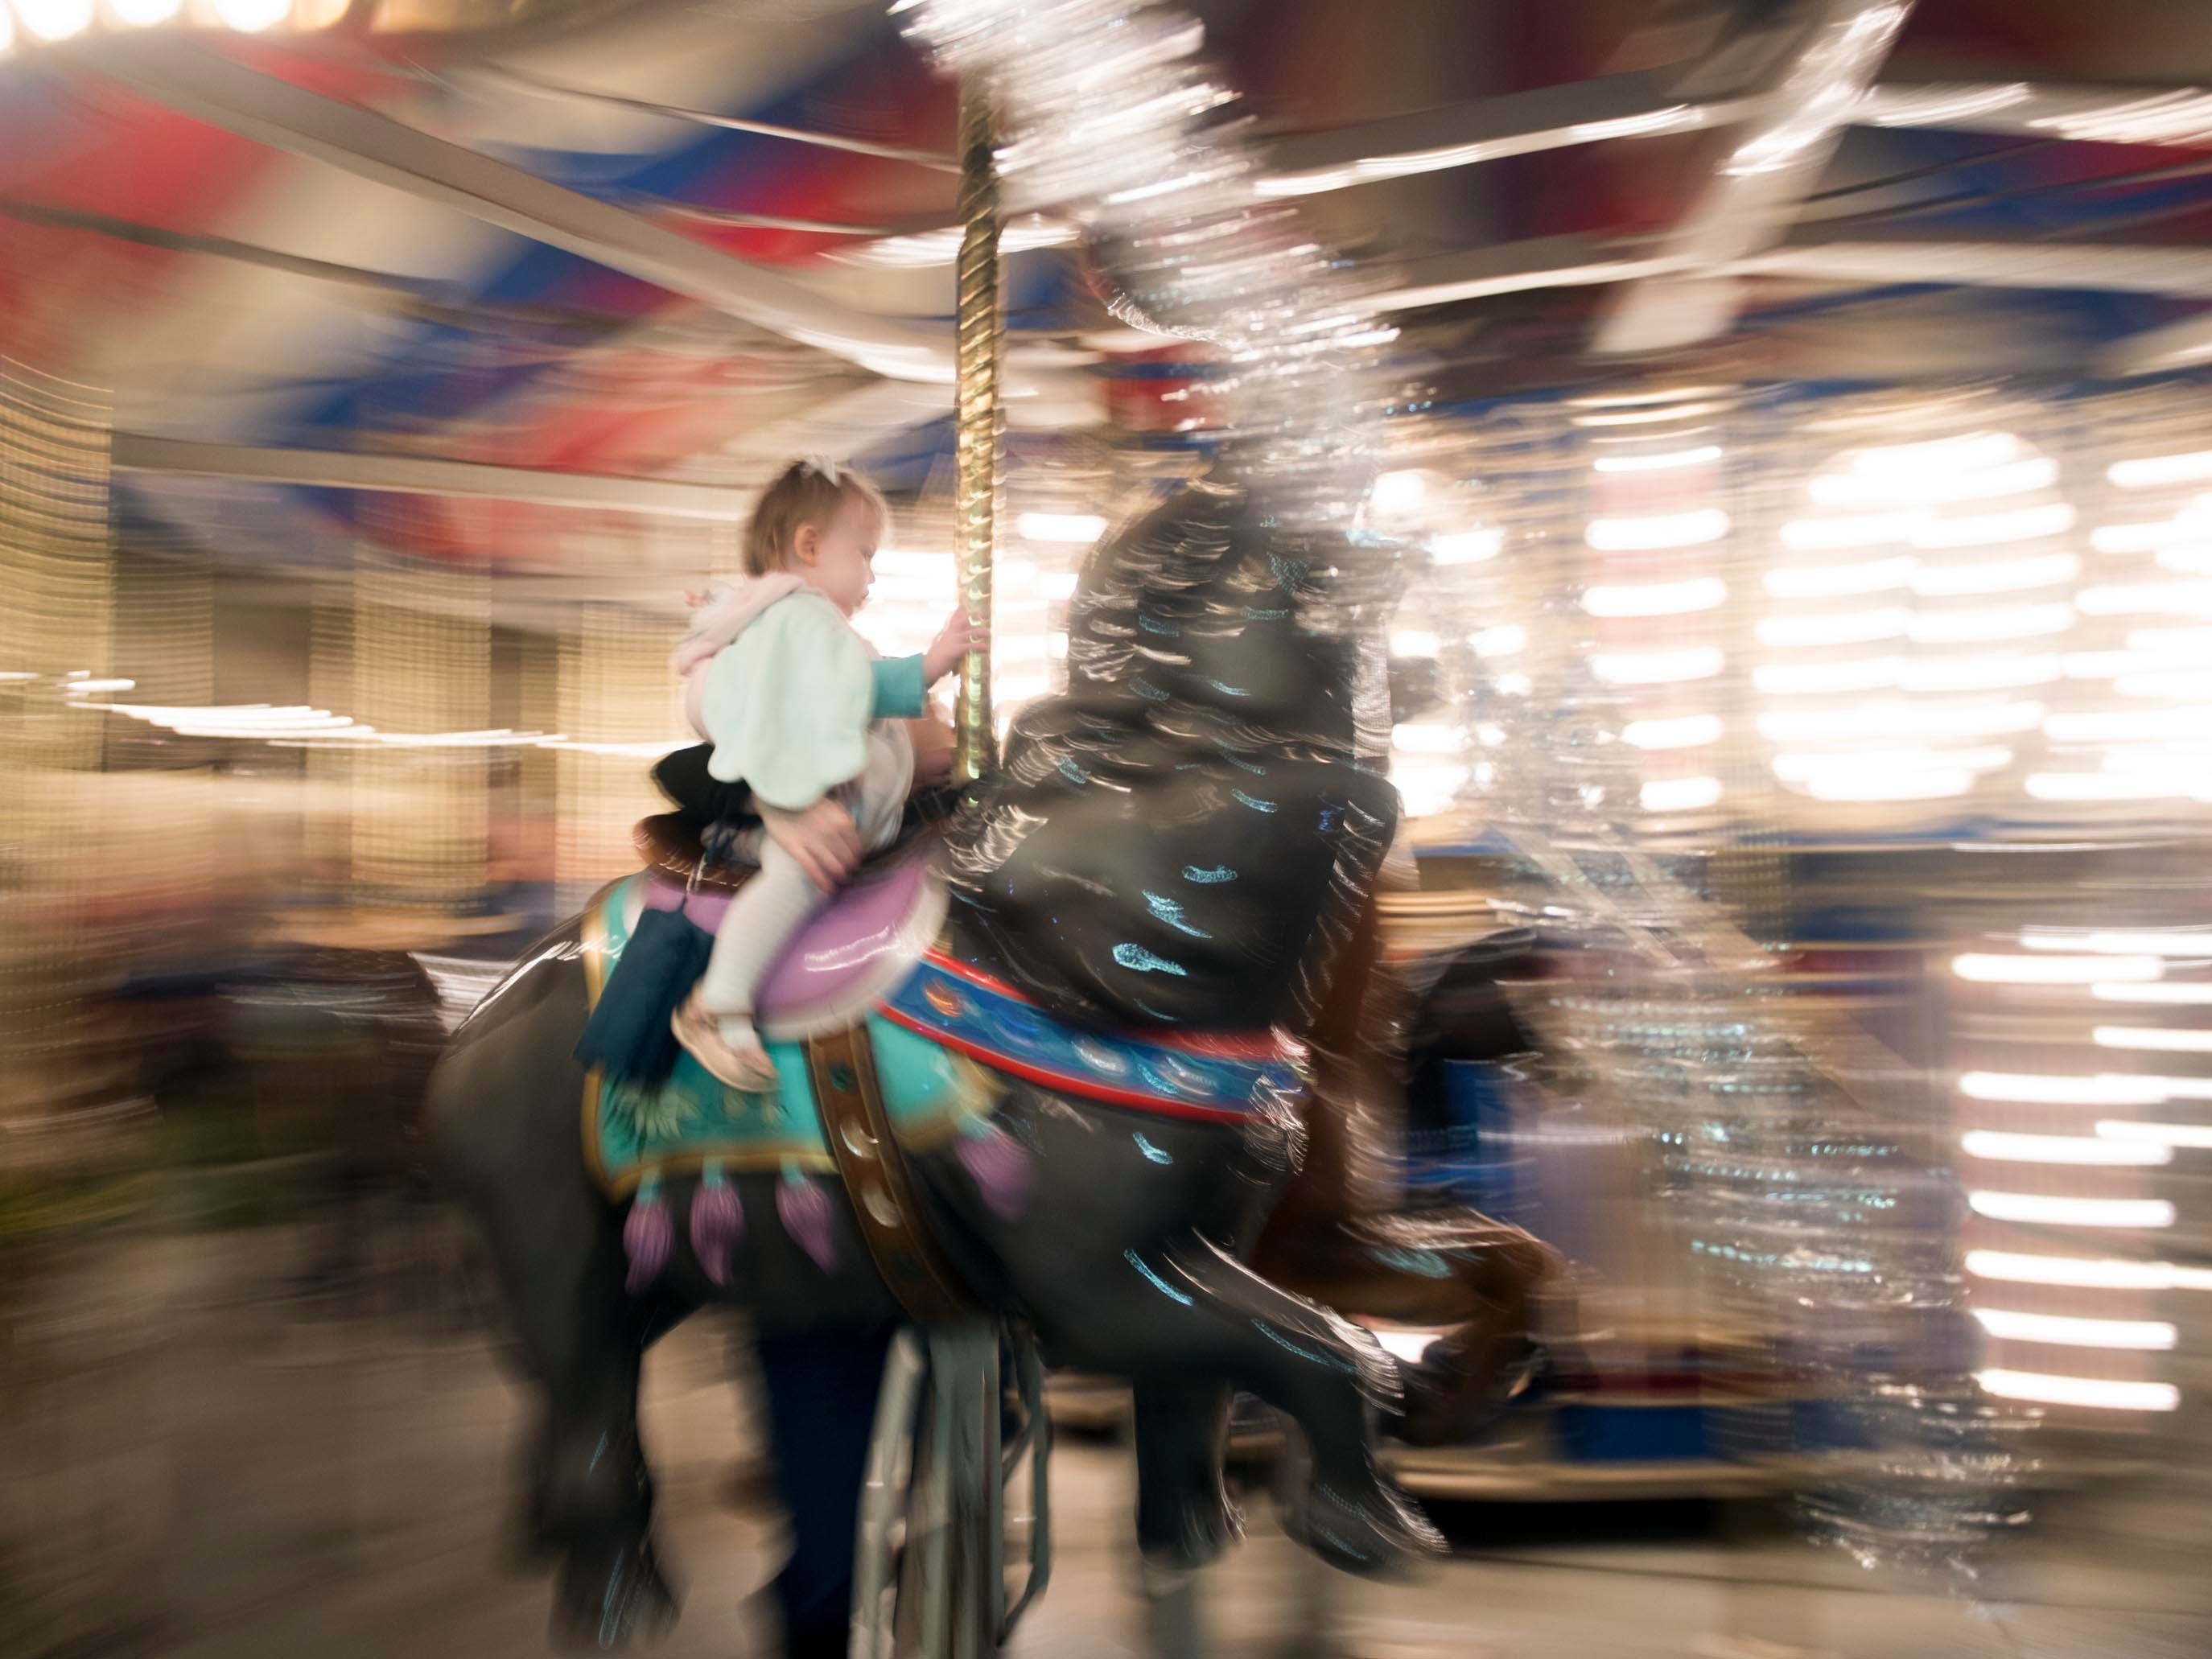 Zoo Knoxville's carousel during Boo! at the Zoo on Saturday, October 20, 2018.